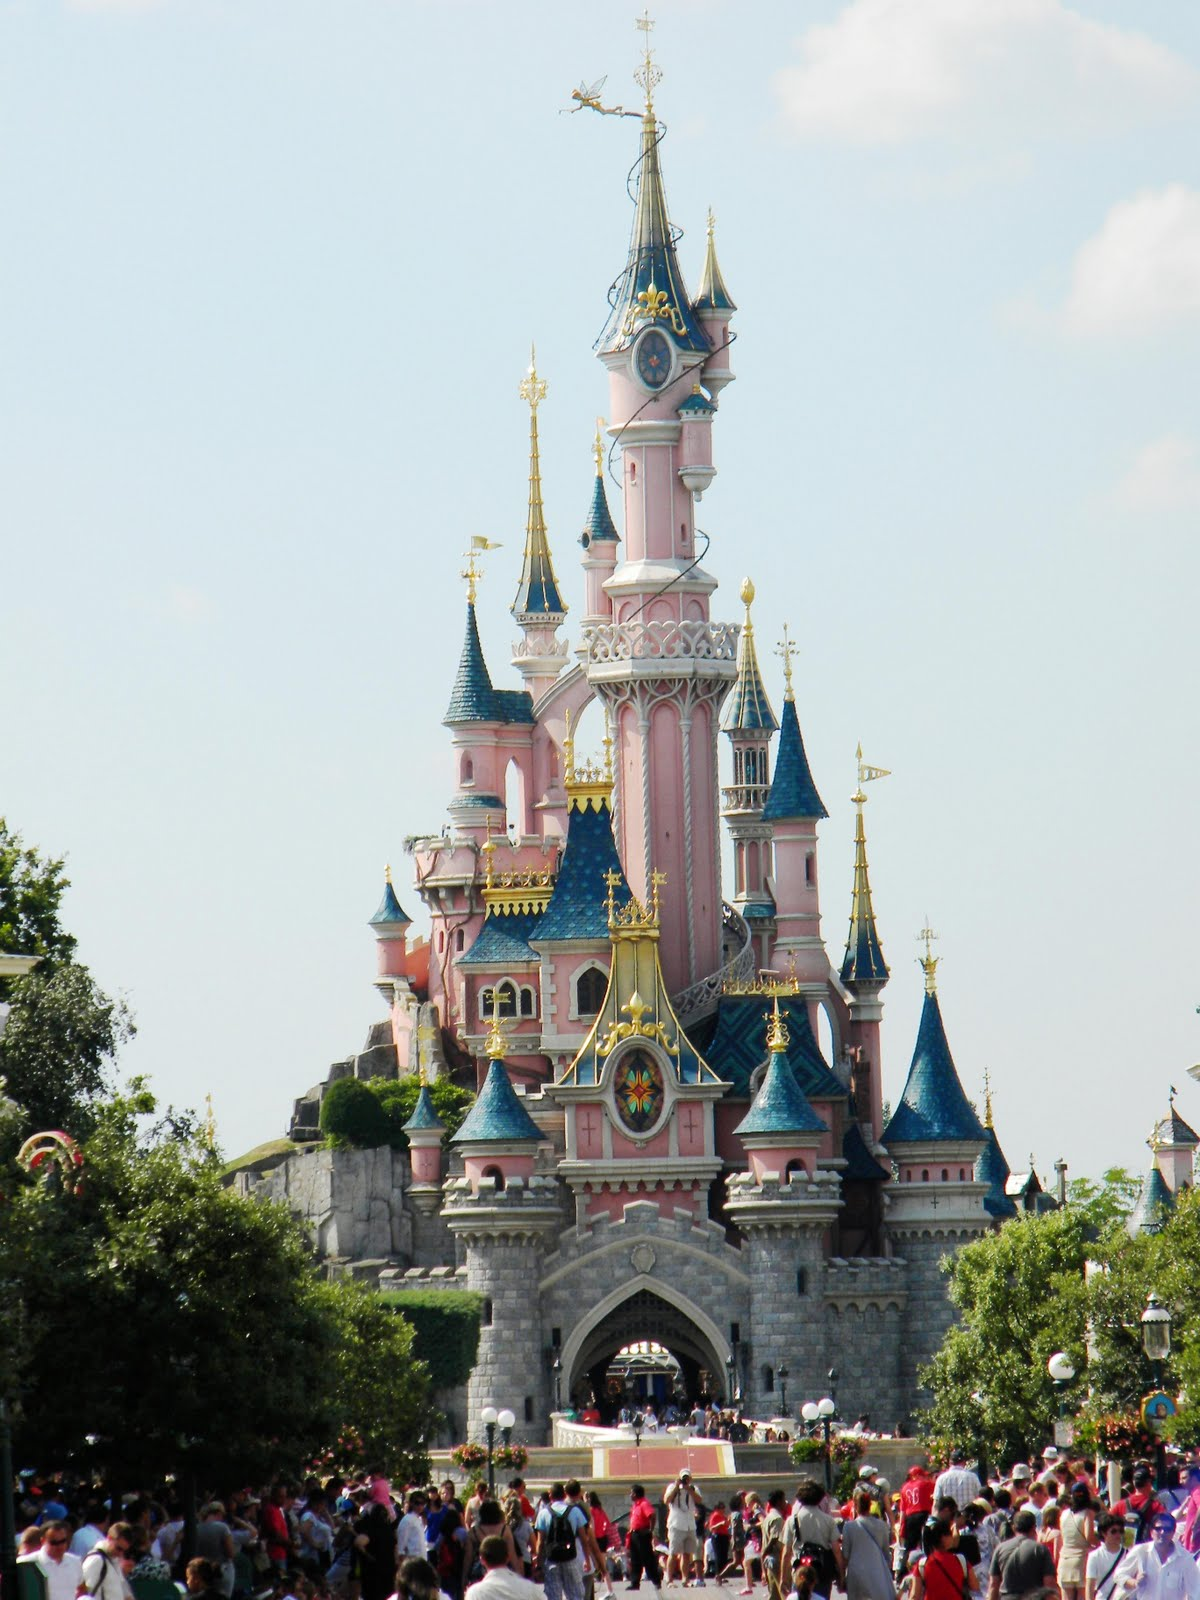 travelville cheapest disneyland paris ticket. Black Bedroom Furniture Sets. Home Design Ideas